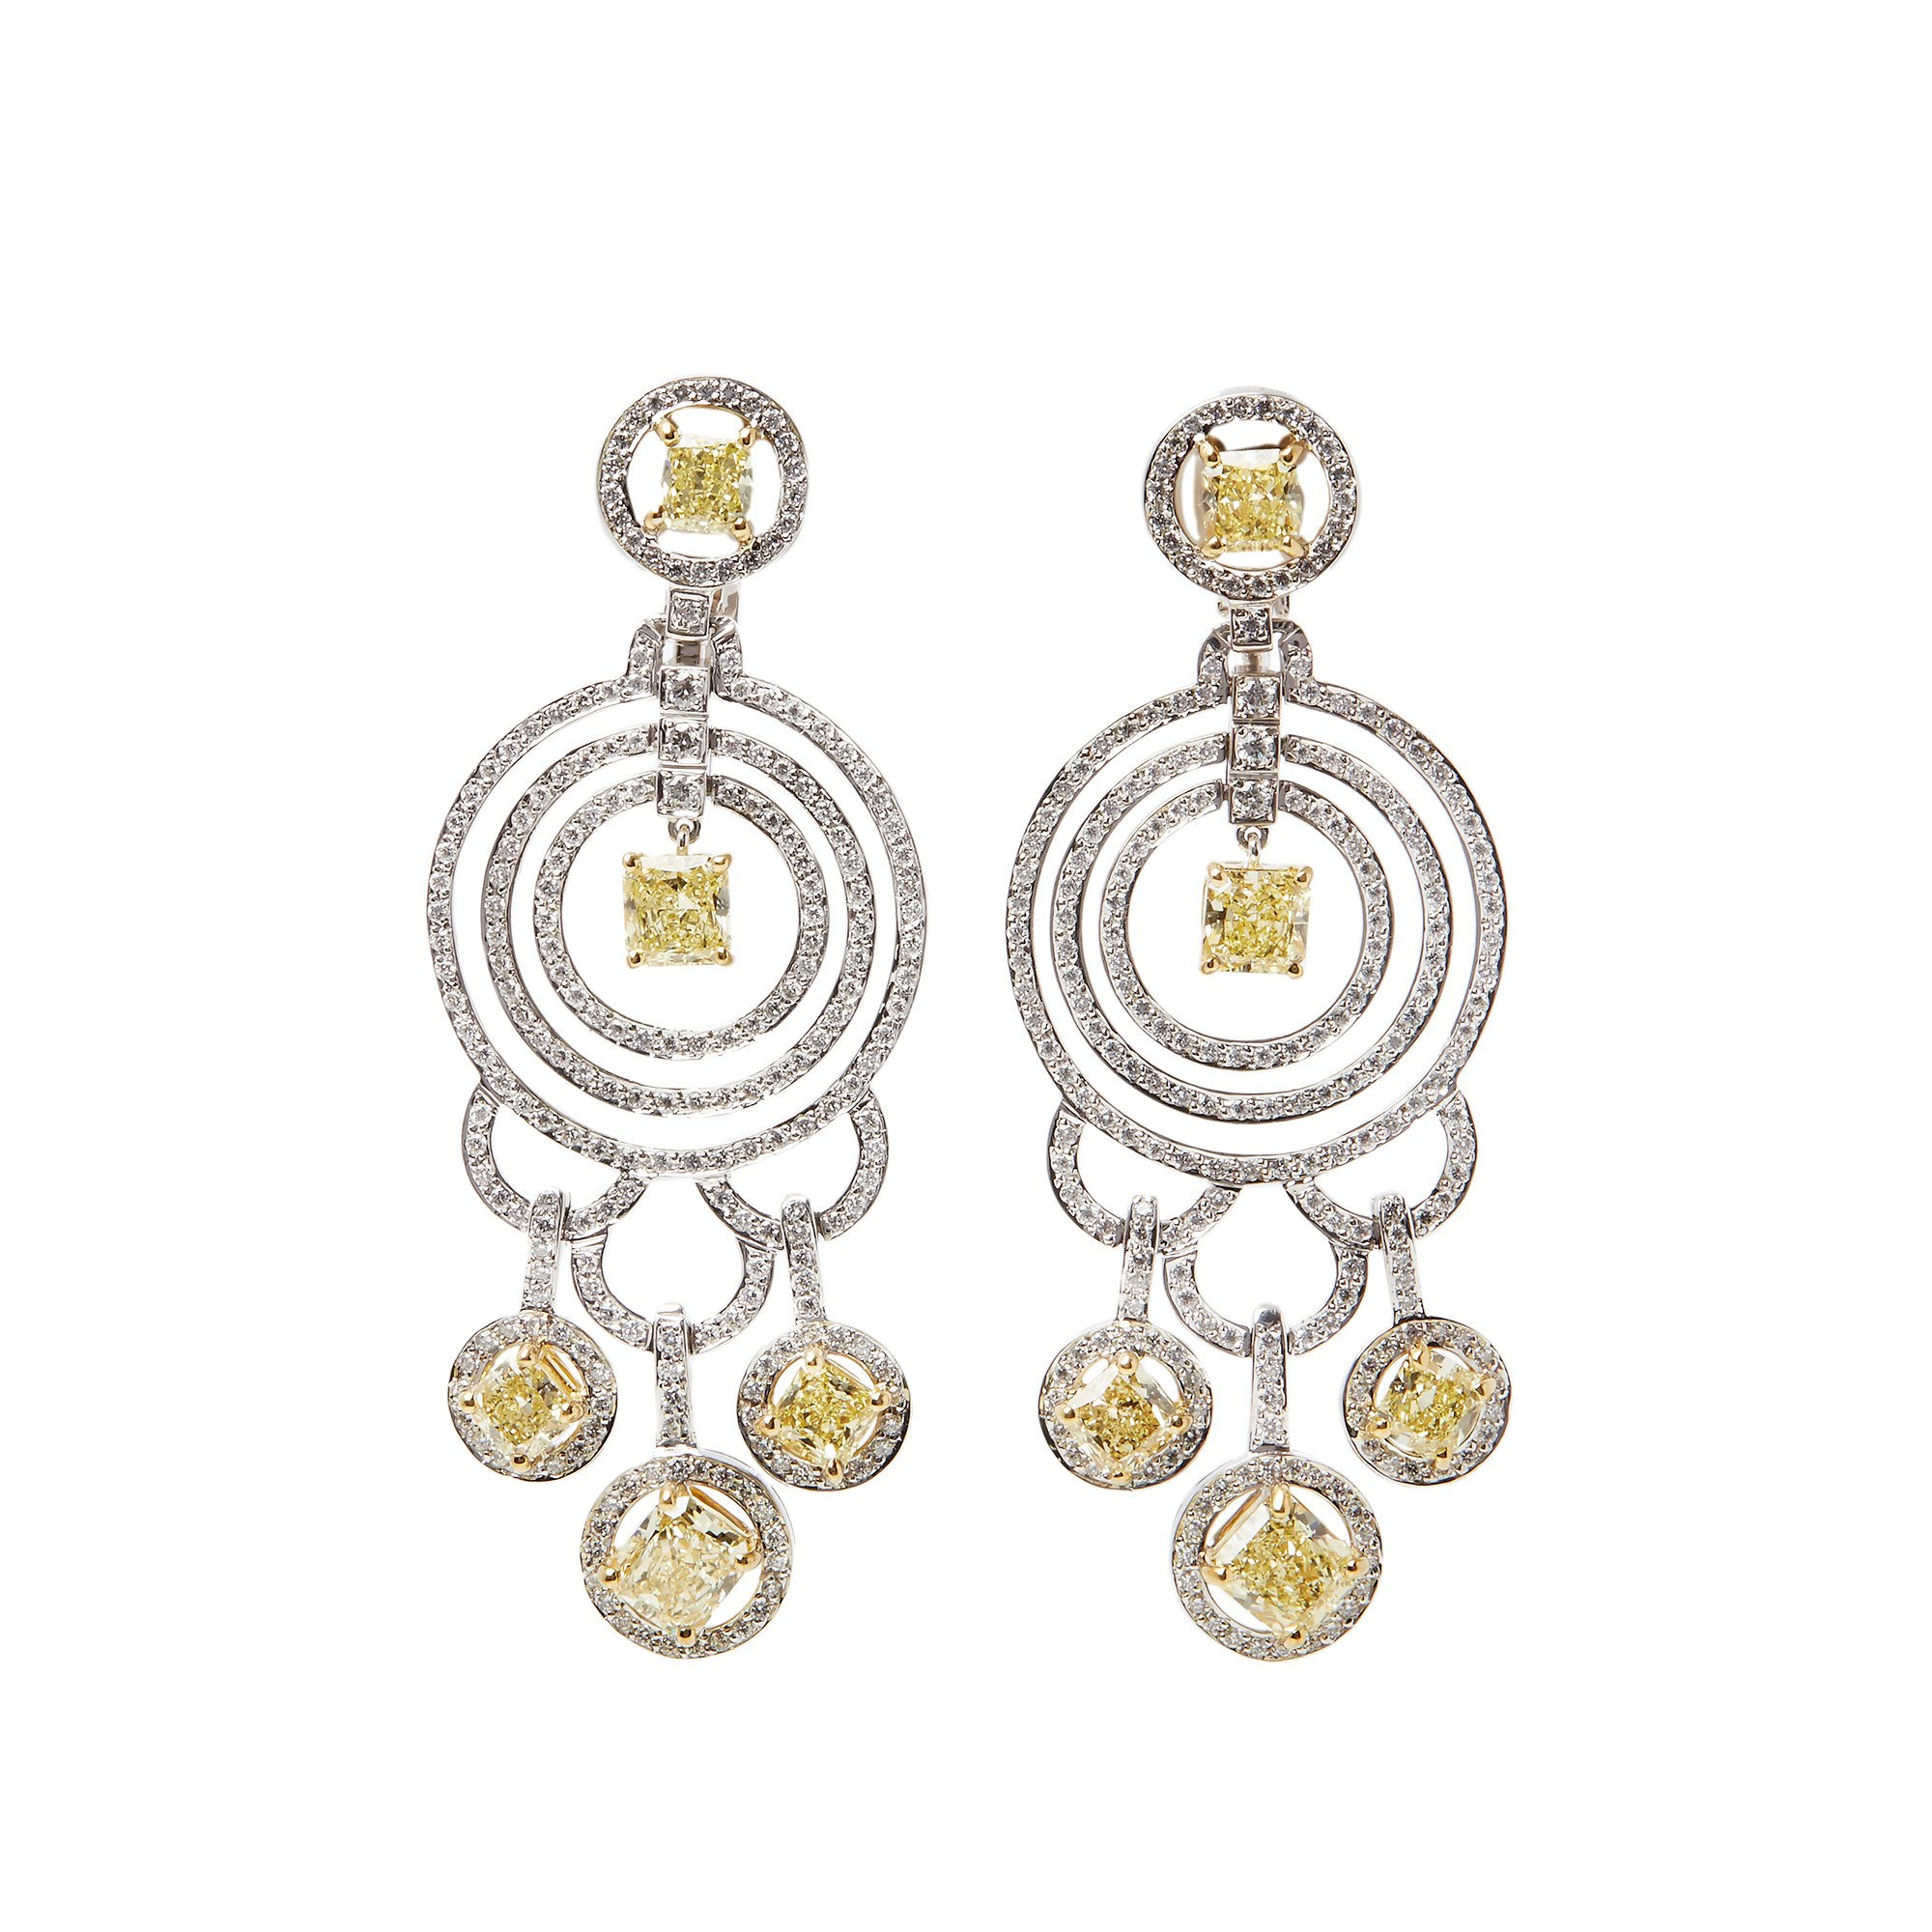 Graff Diamonds 18k White Gold Fancy Yellow & White Diamond Dress Earrings